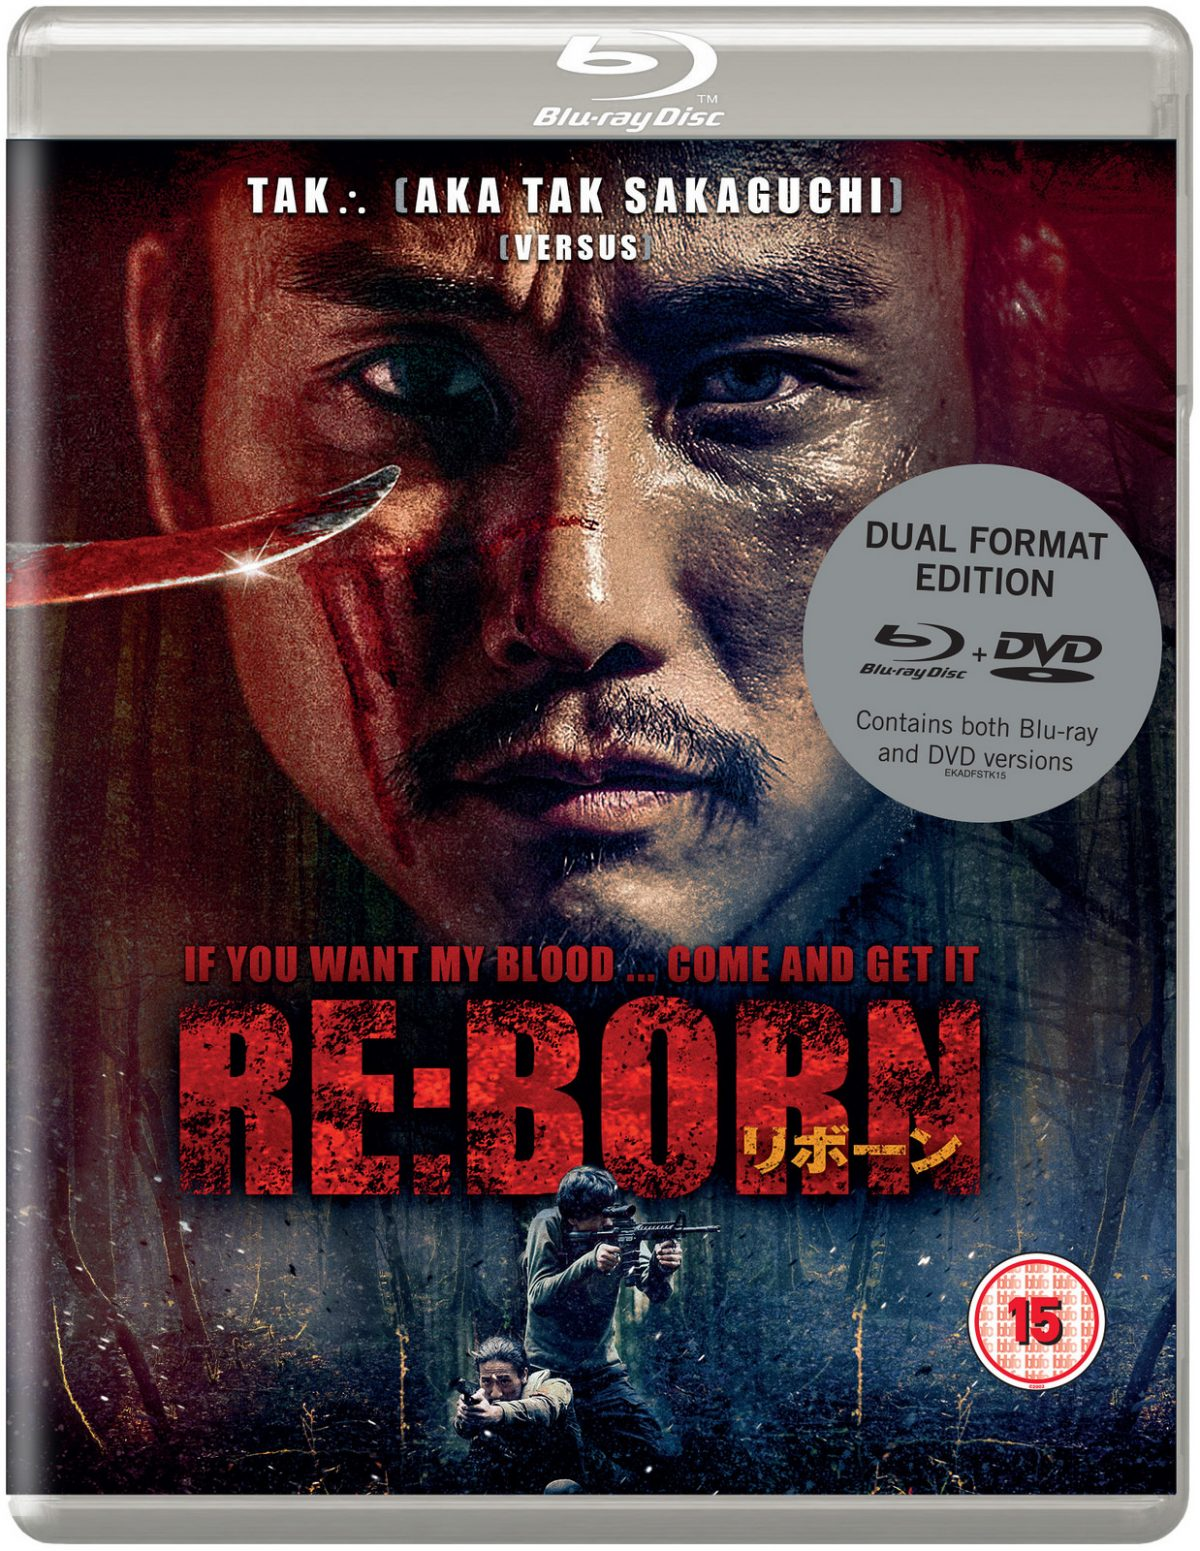 Win Re:Born Dual-Format edition. Blood-soaked, throat-gouging mayhem in a signature style you will not have witnessed before!